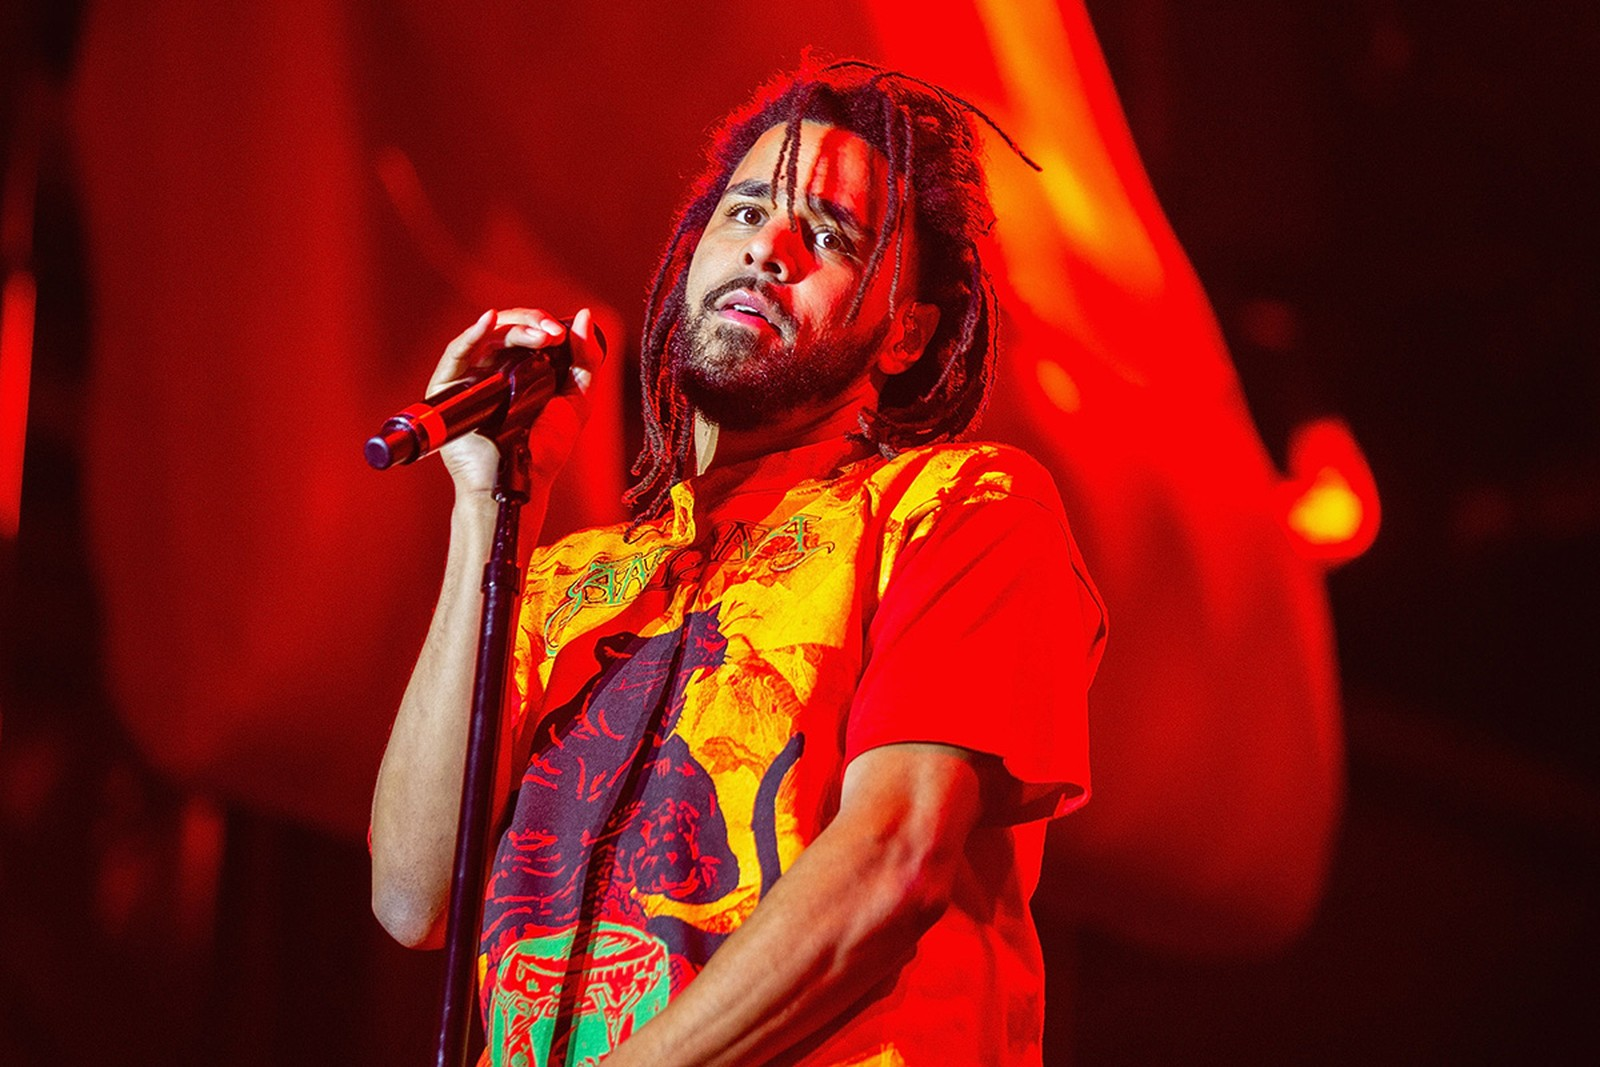 J Cole's Dreamville Launches Brand New Media Company and Content Studio